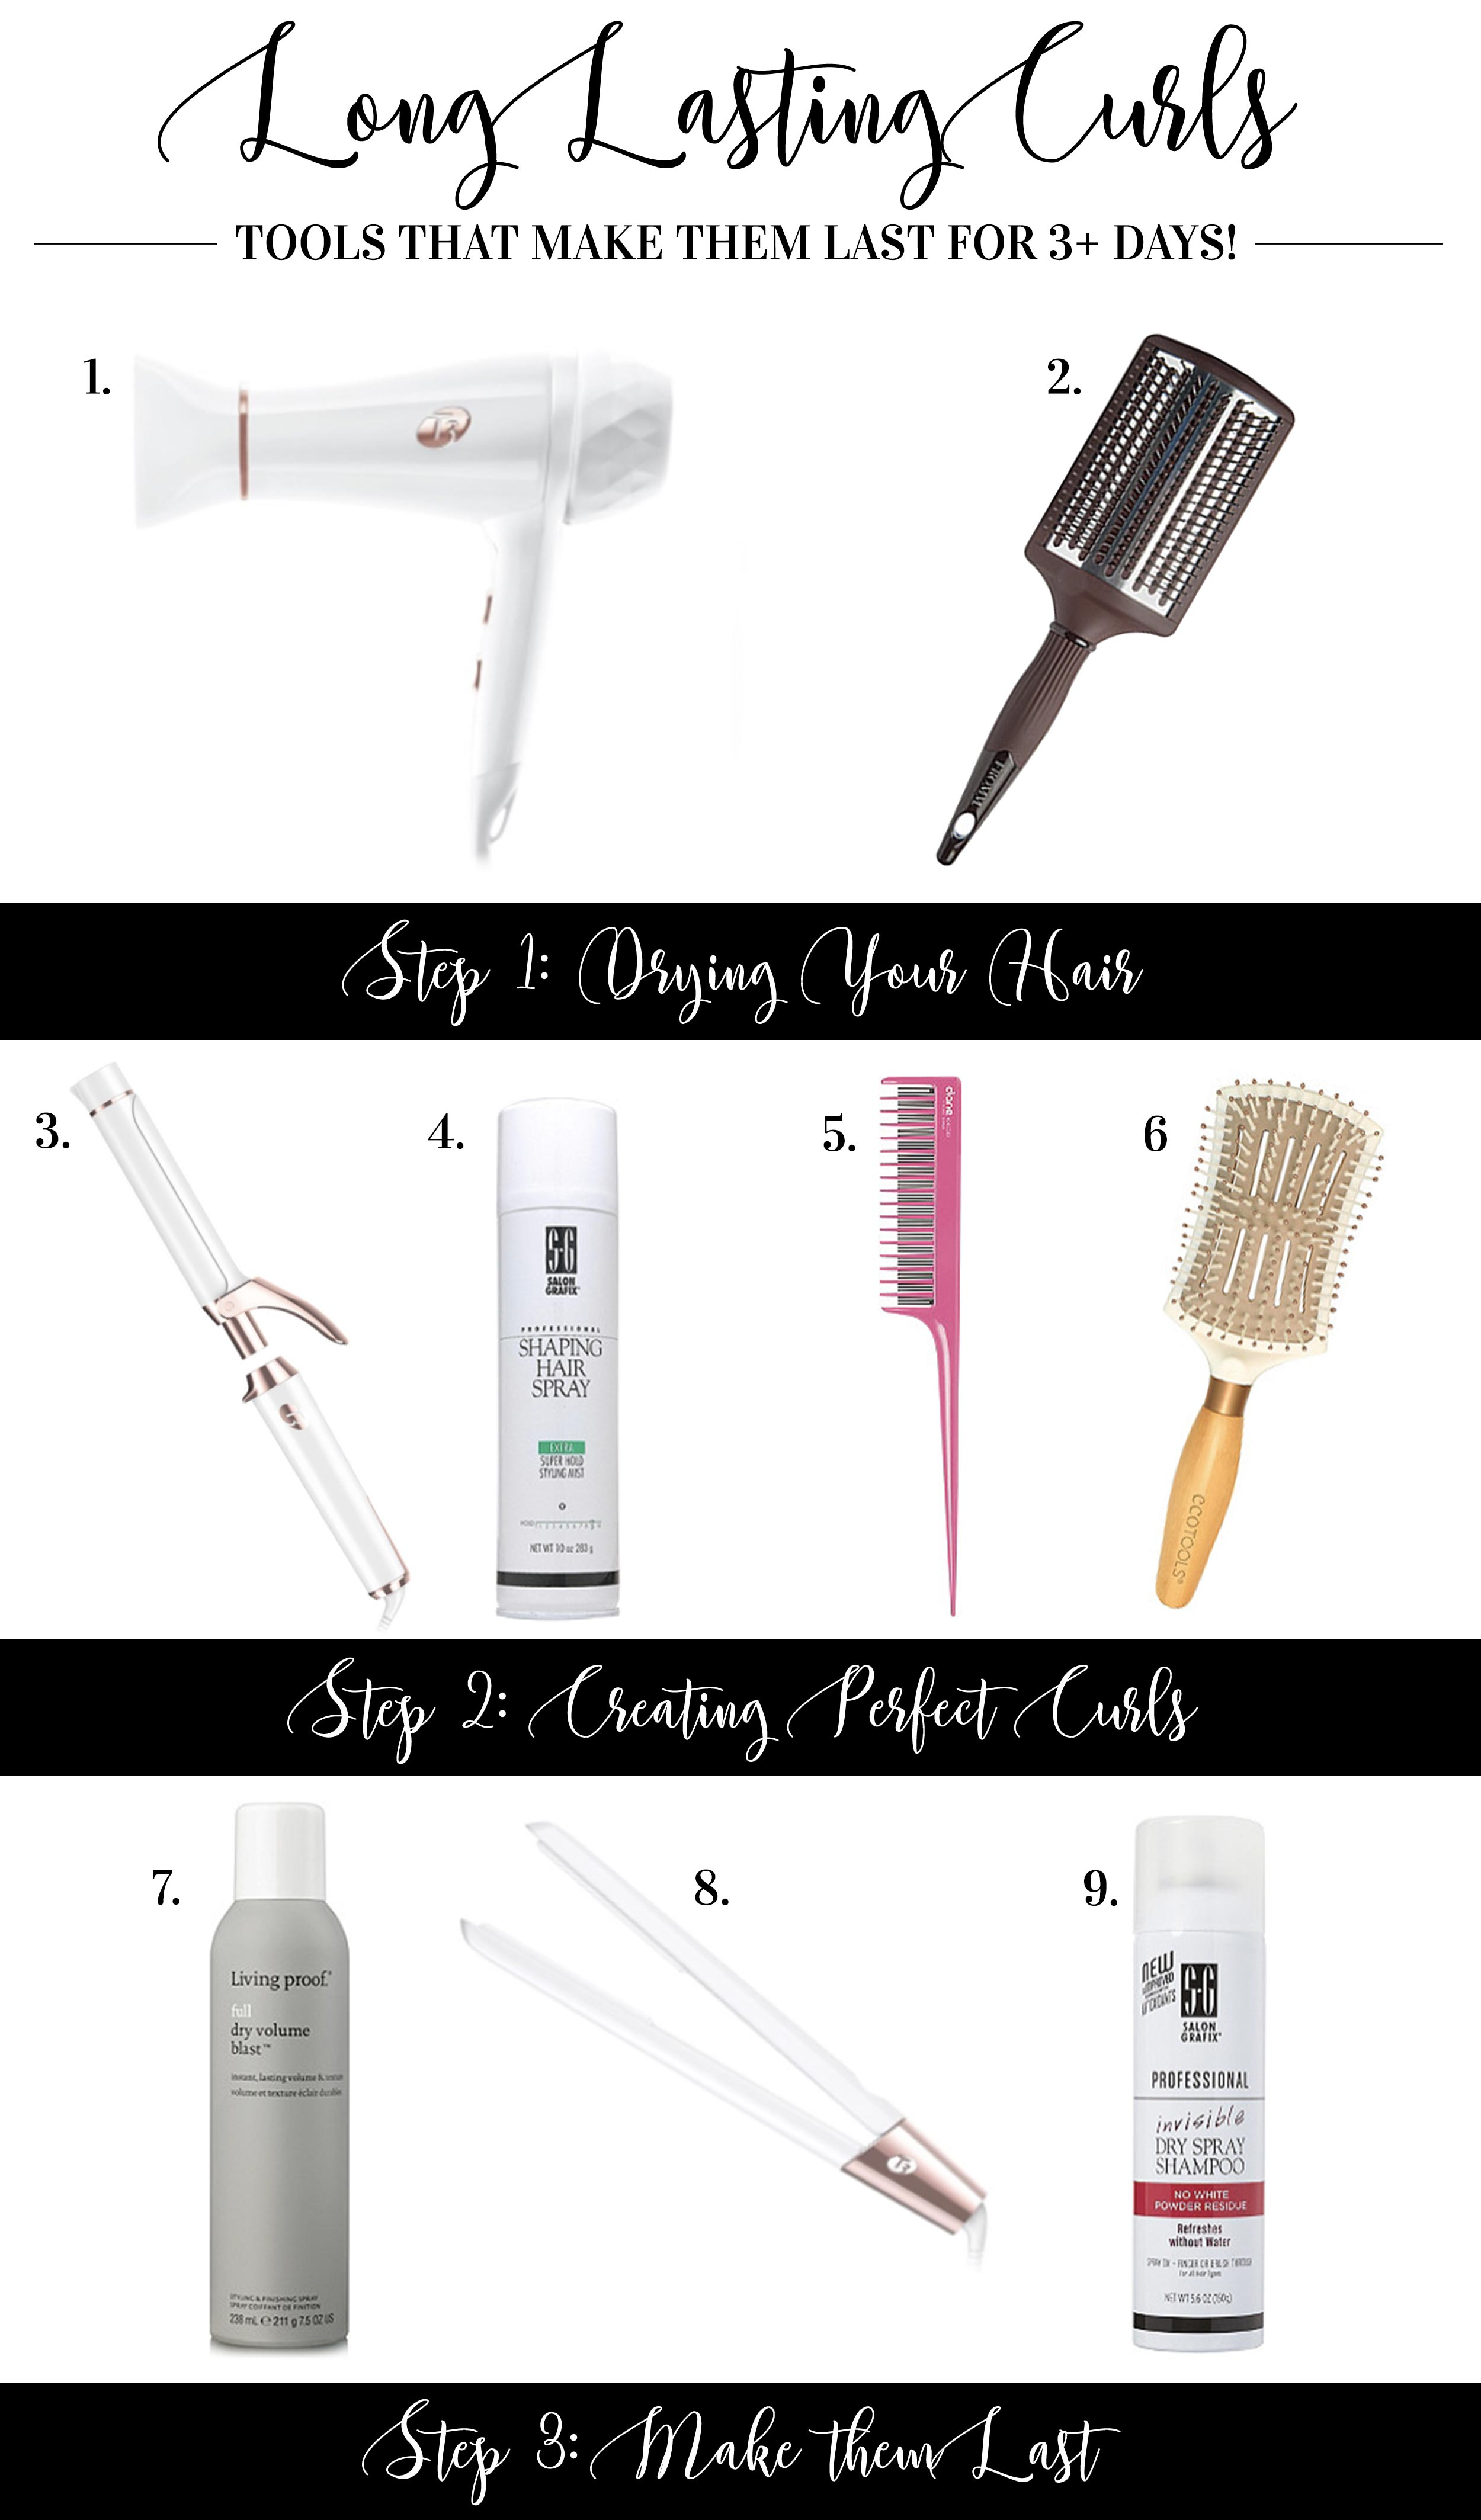 Products and tools to make your curls last longer.  Curls that last more than a day.